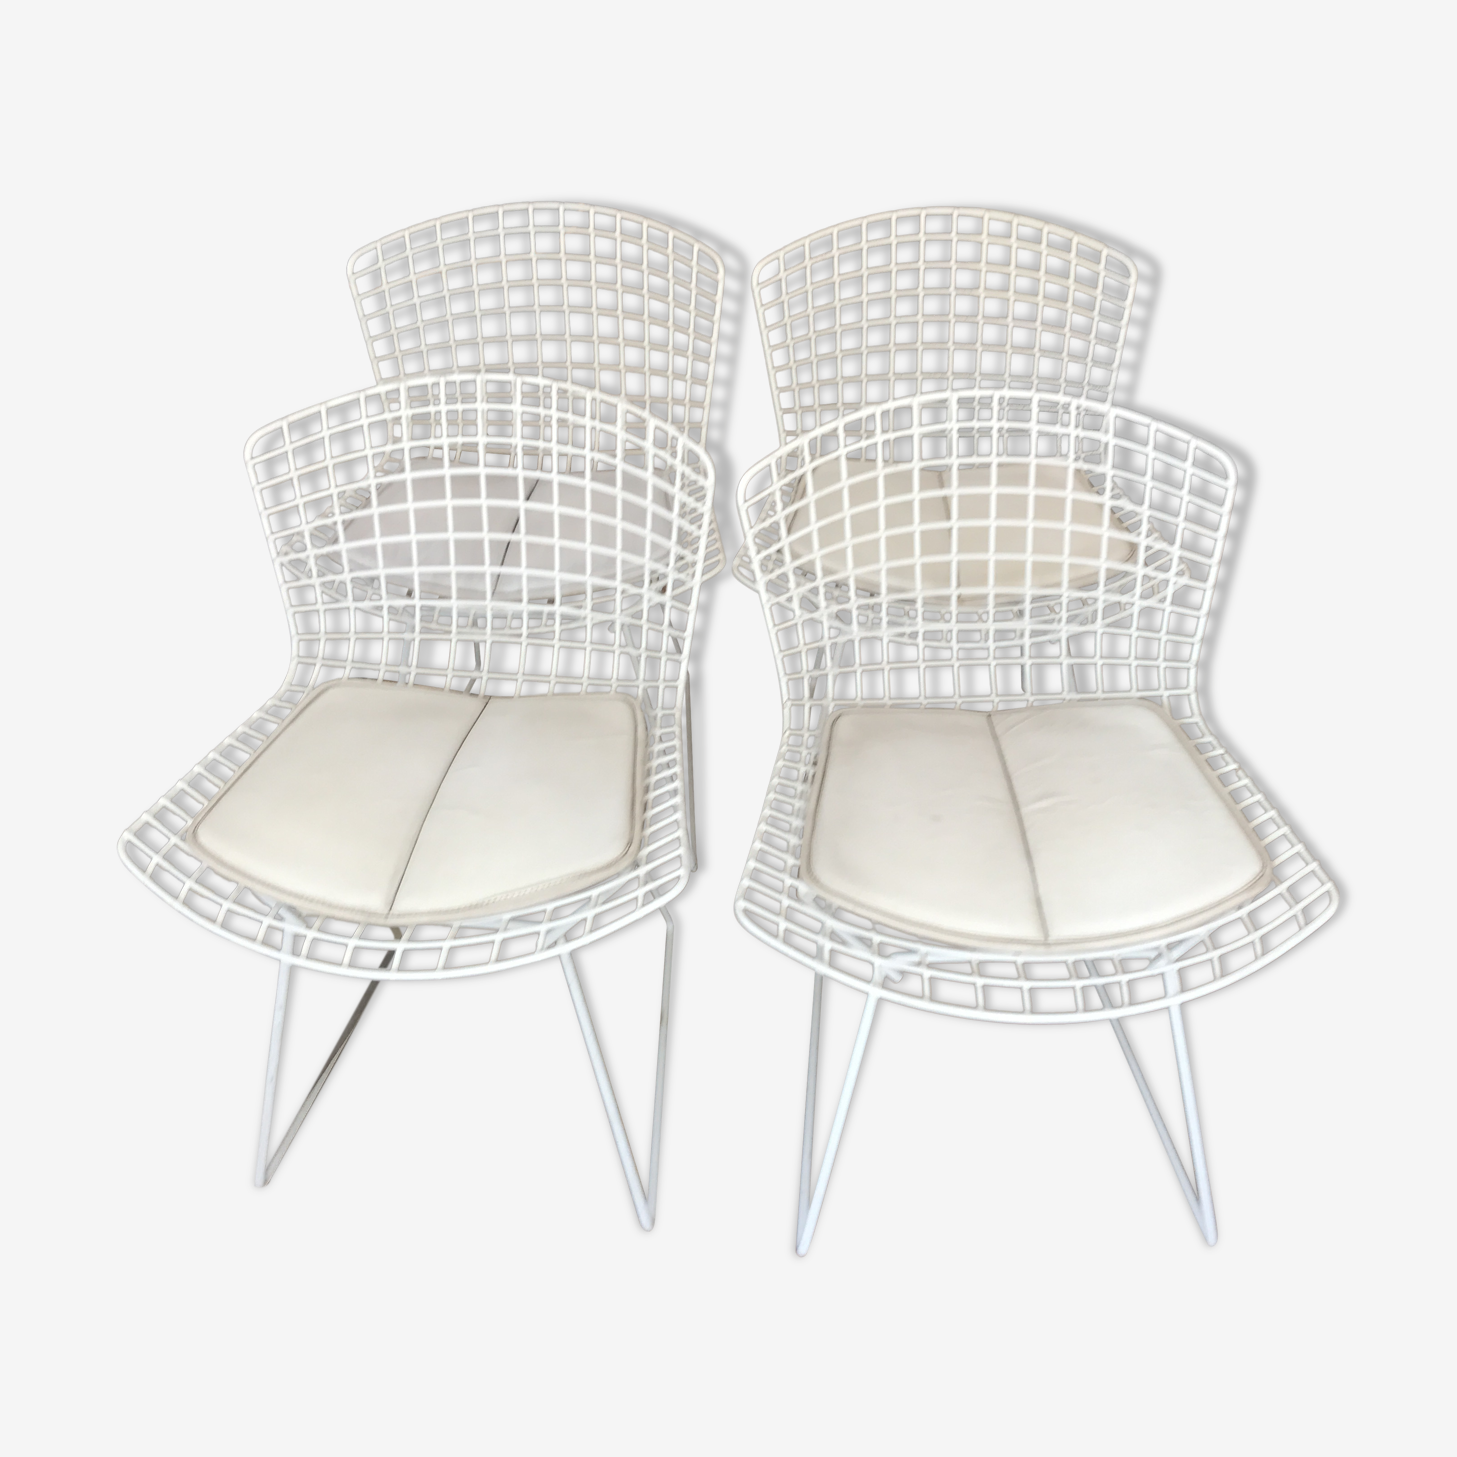 Set of 4 chairs Harry Bertoia edition Knoll signed 1990